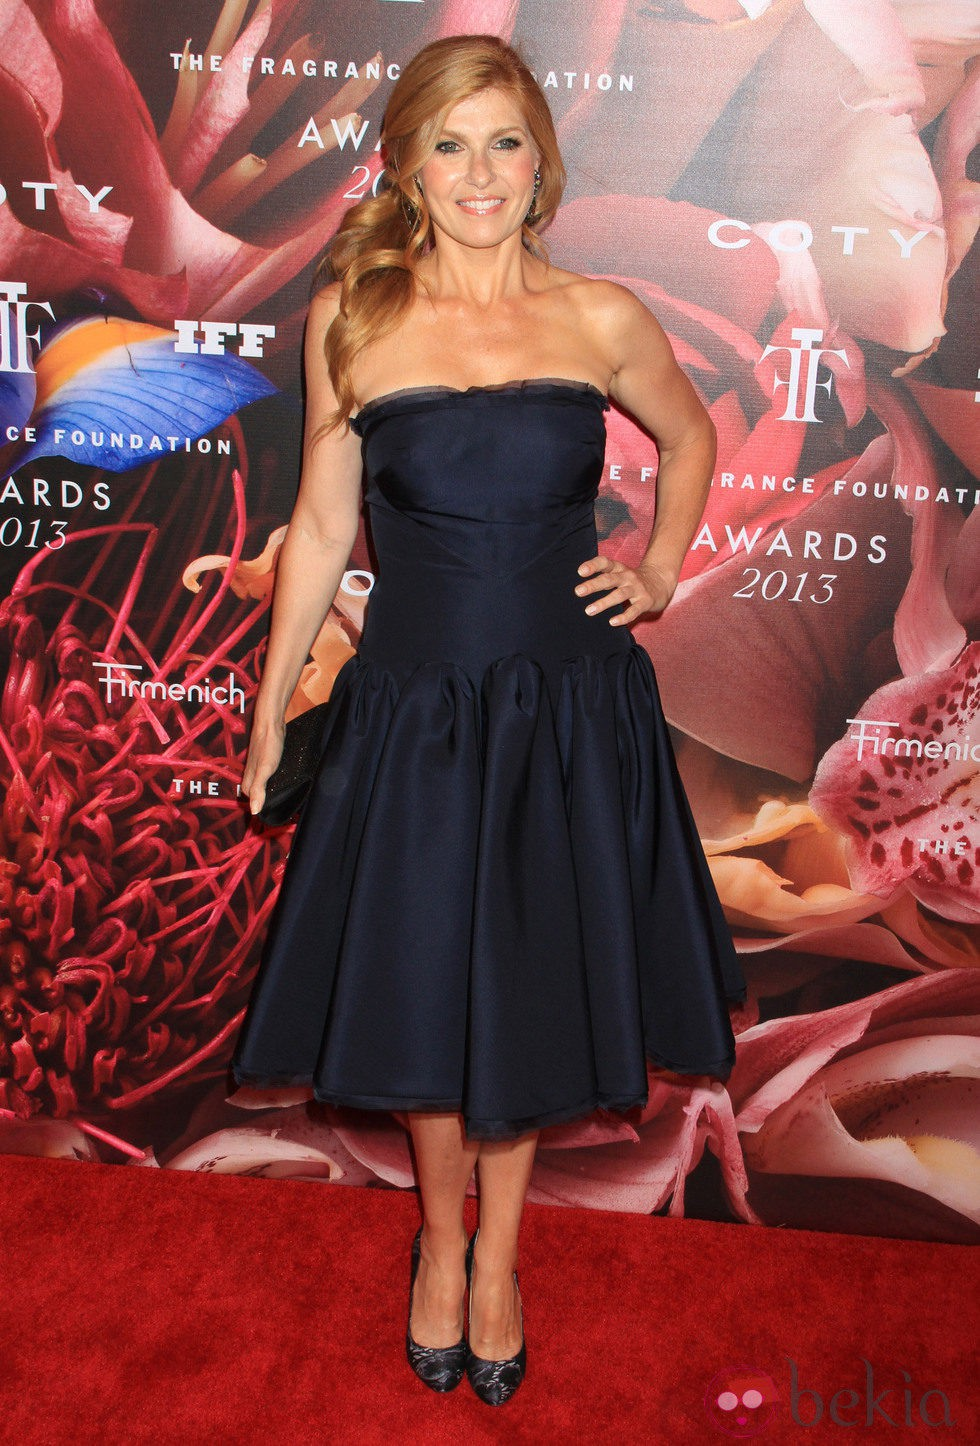 Connie Britton en la Fragrance Foundation Awards 2013